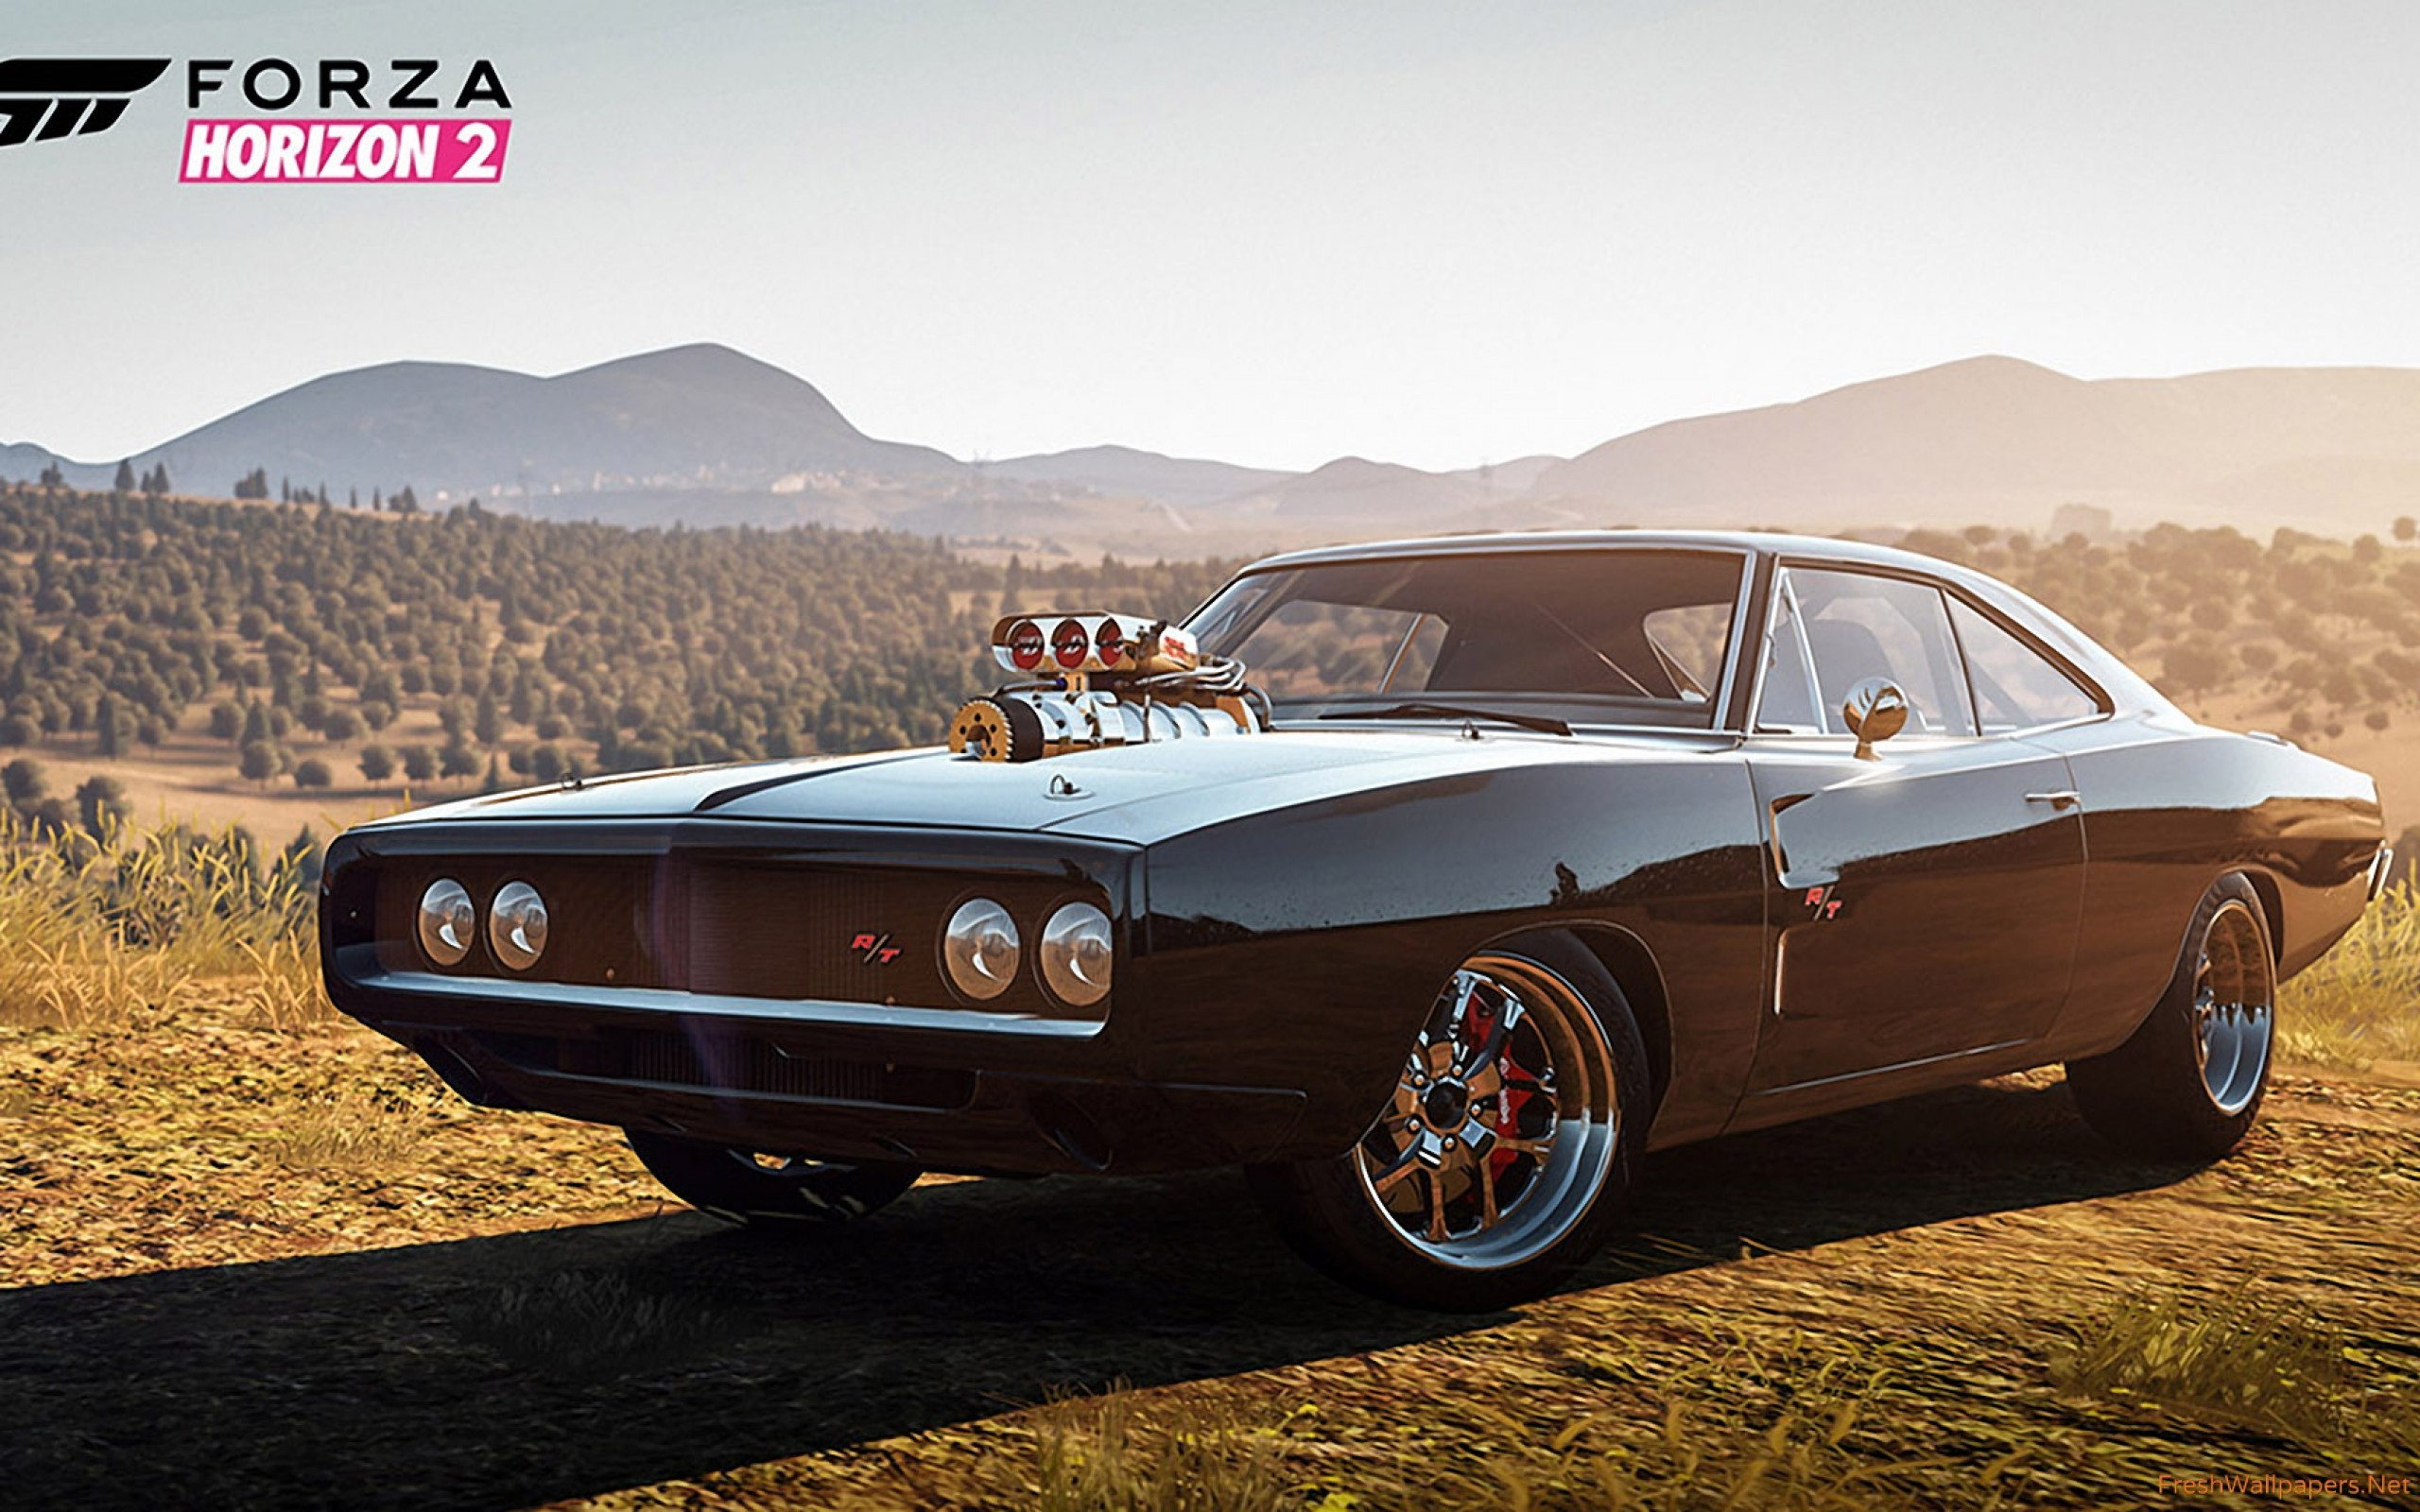 1970 Dodge Charger Rt Wallpaper 71 Images 2560x1600 Stand